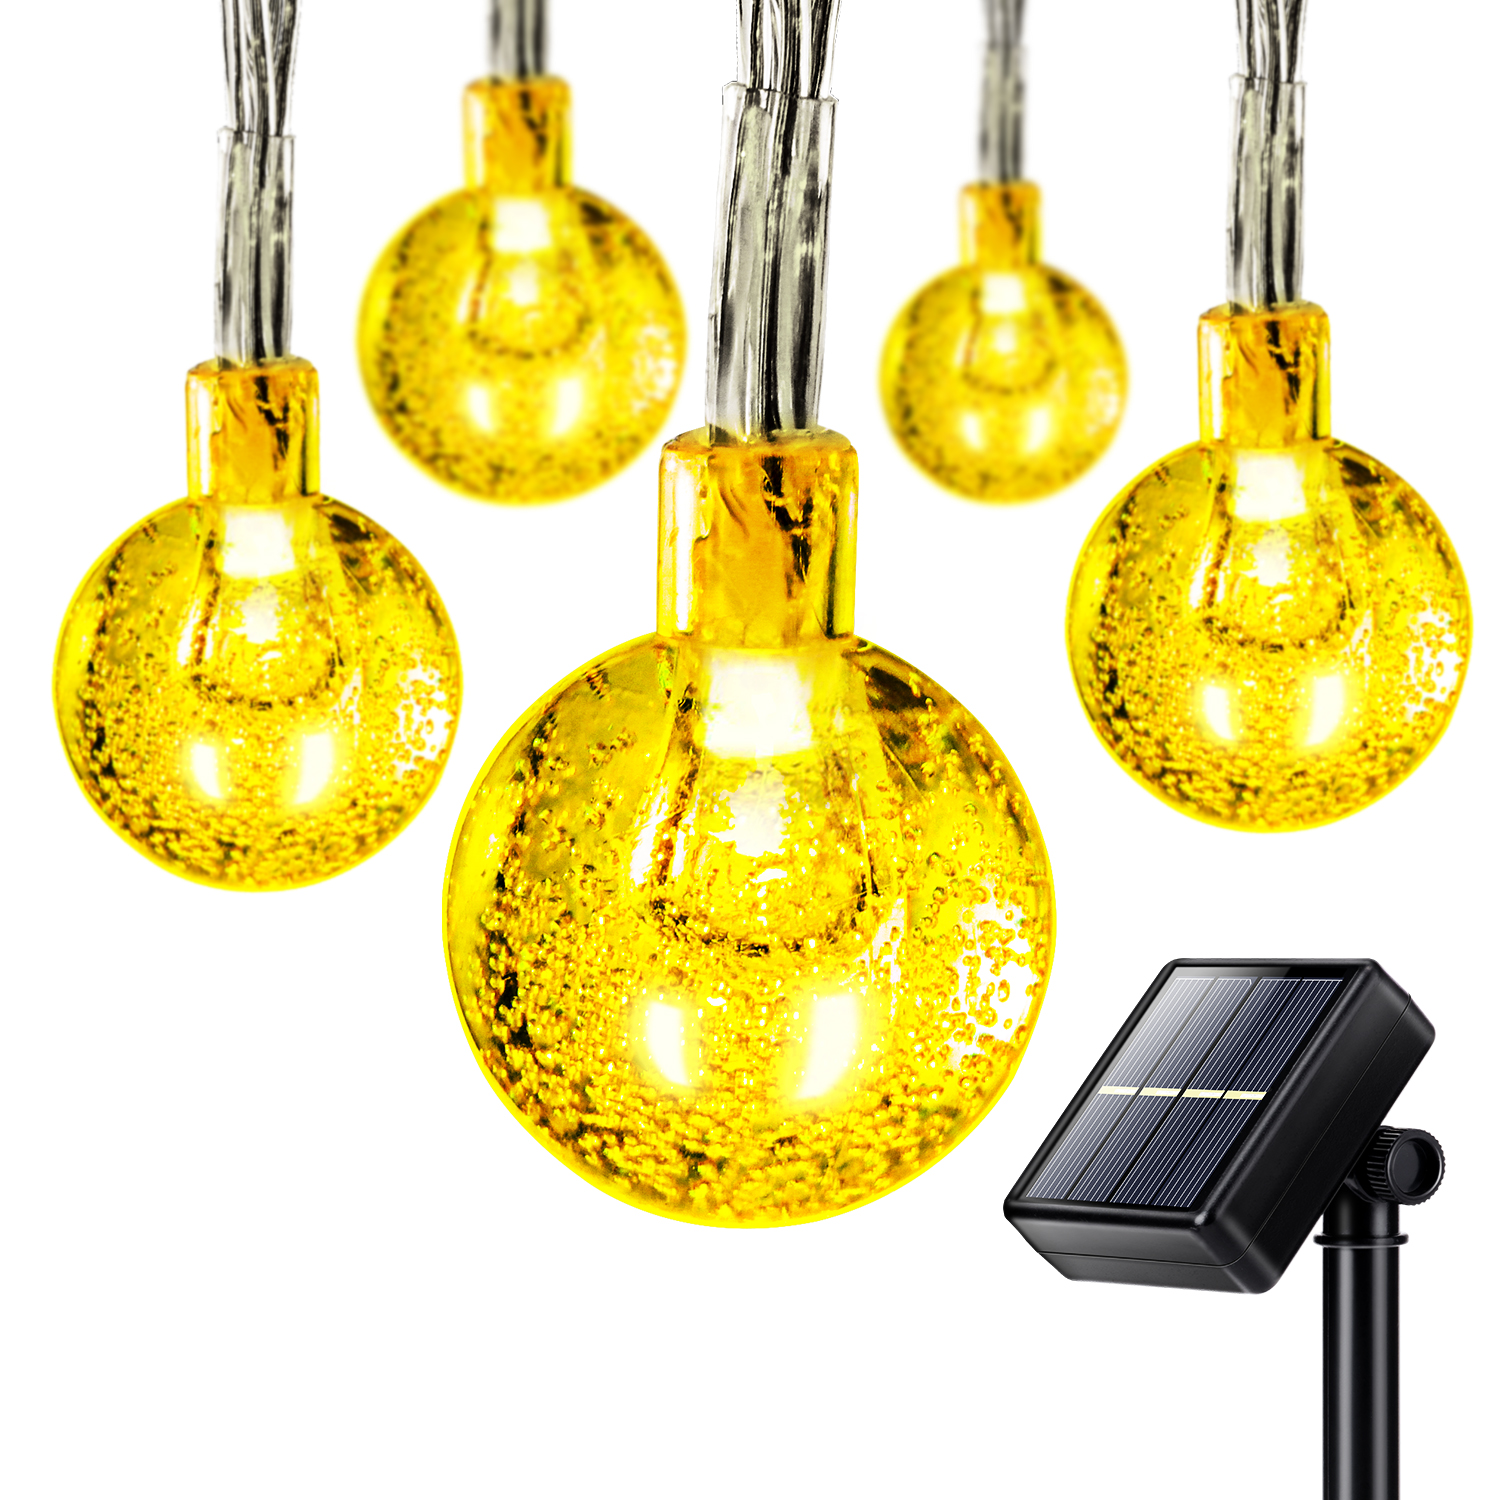 25ft 50 LED Solar Outdoor String Lights Waterproof Ball Lights Party Xmas Fun eBay